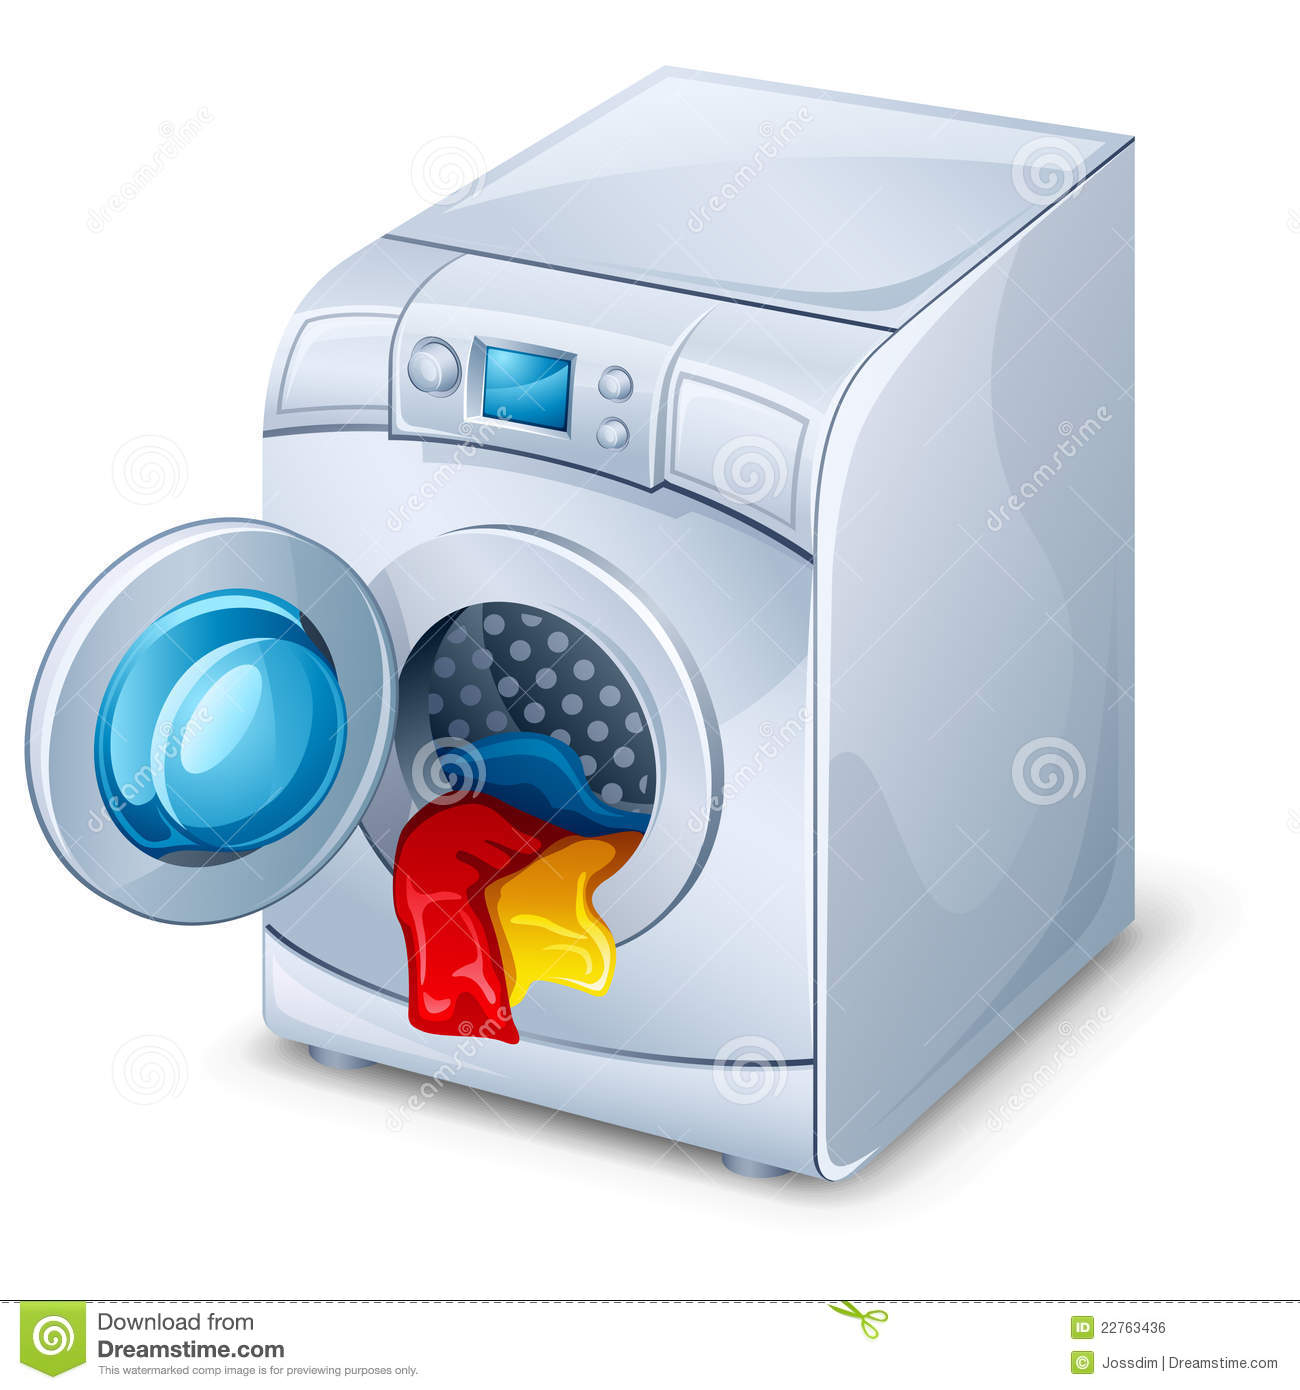 Washing       Machine    Royalty Free Stock Image  Image  22763436